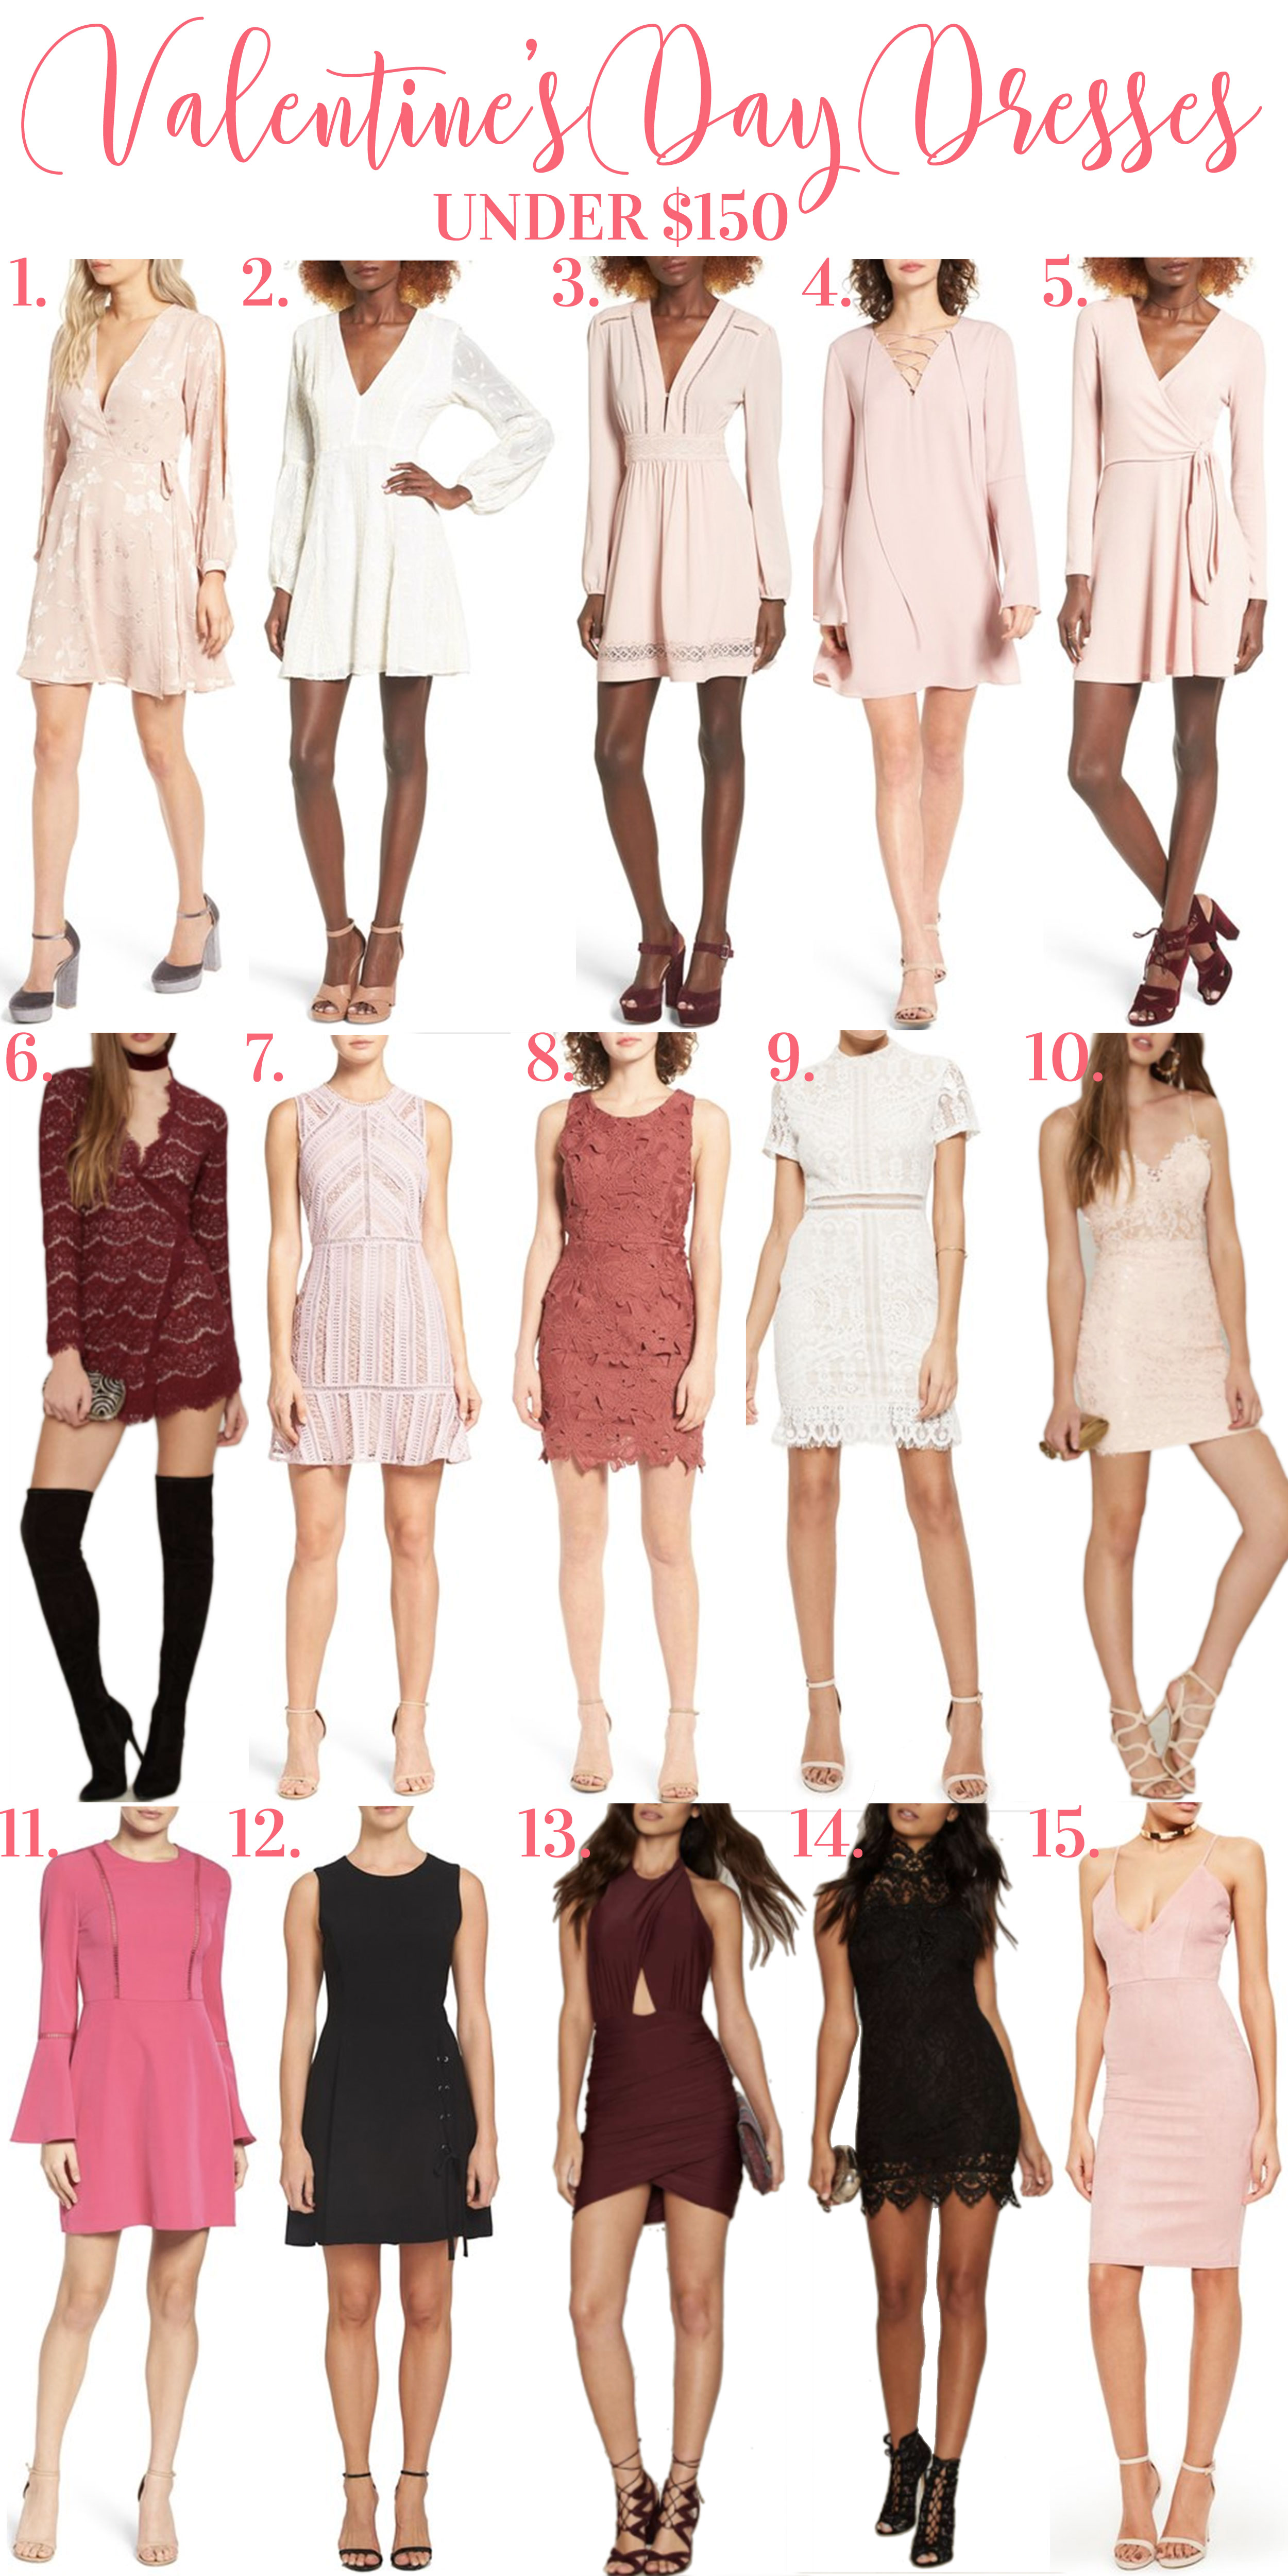 Affordable Valentineu0027s Day Dresses. Dresses For Valentineu0027s Day Under $150.